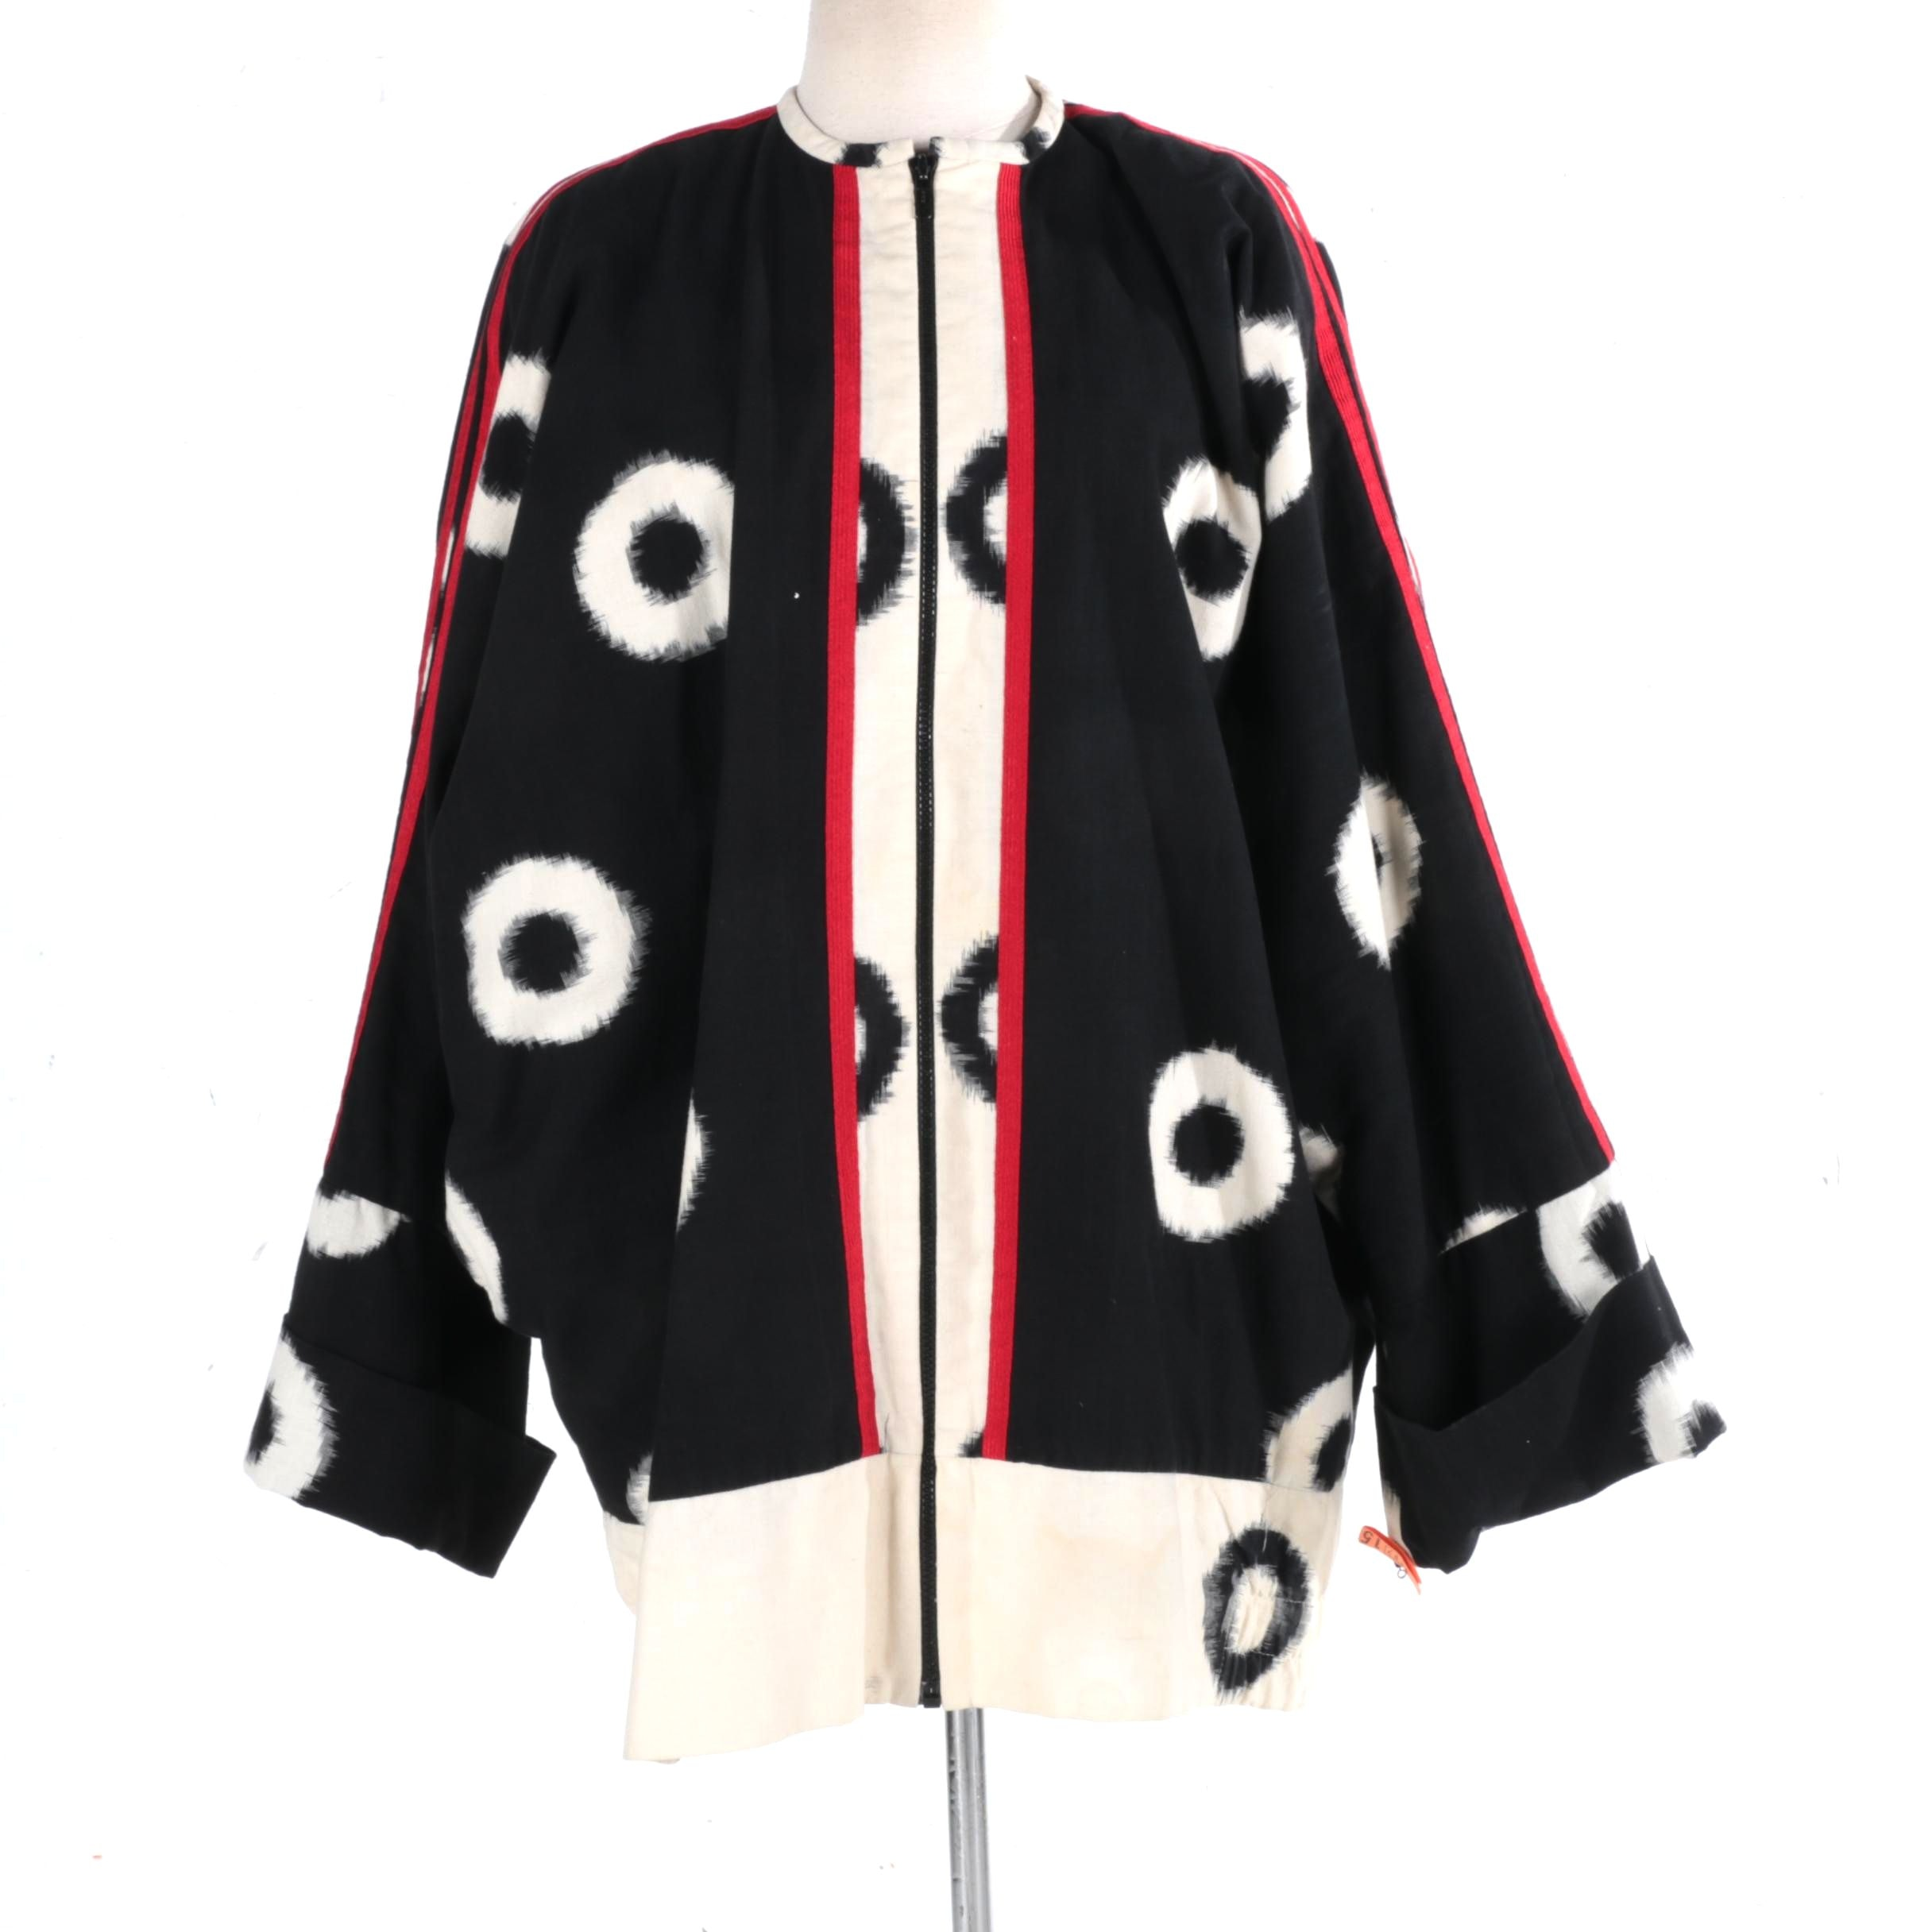 Cassowary Patterned Jacket With Dolman Sleeves